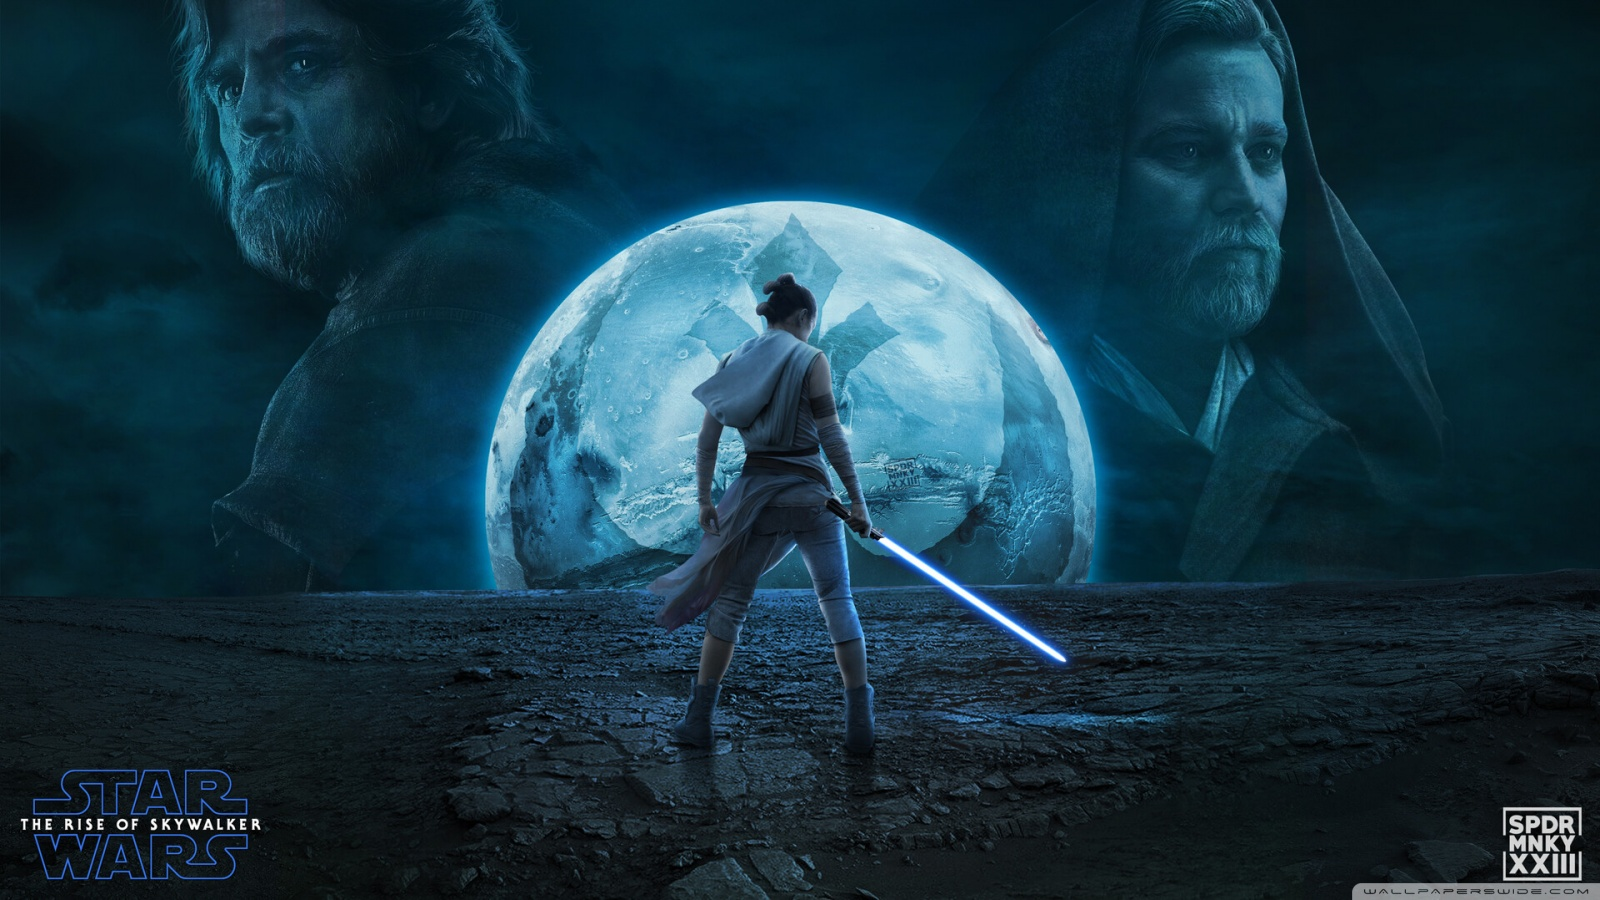 Star Wars The Rise Of Skywalker Poster , HD Wallpaper & Backgrounds